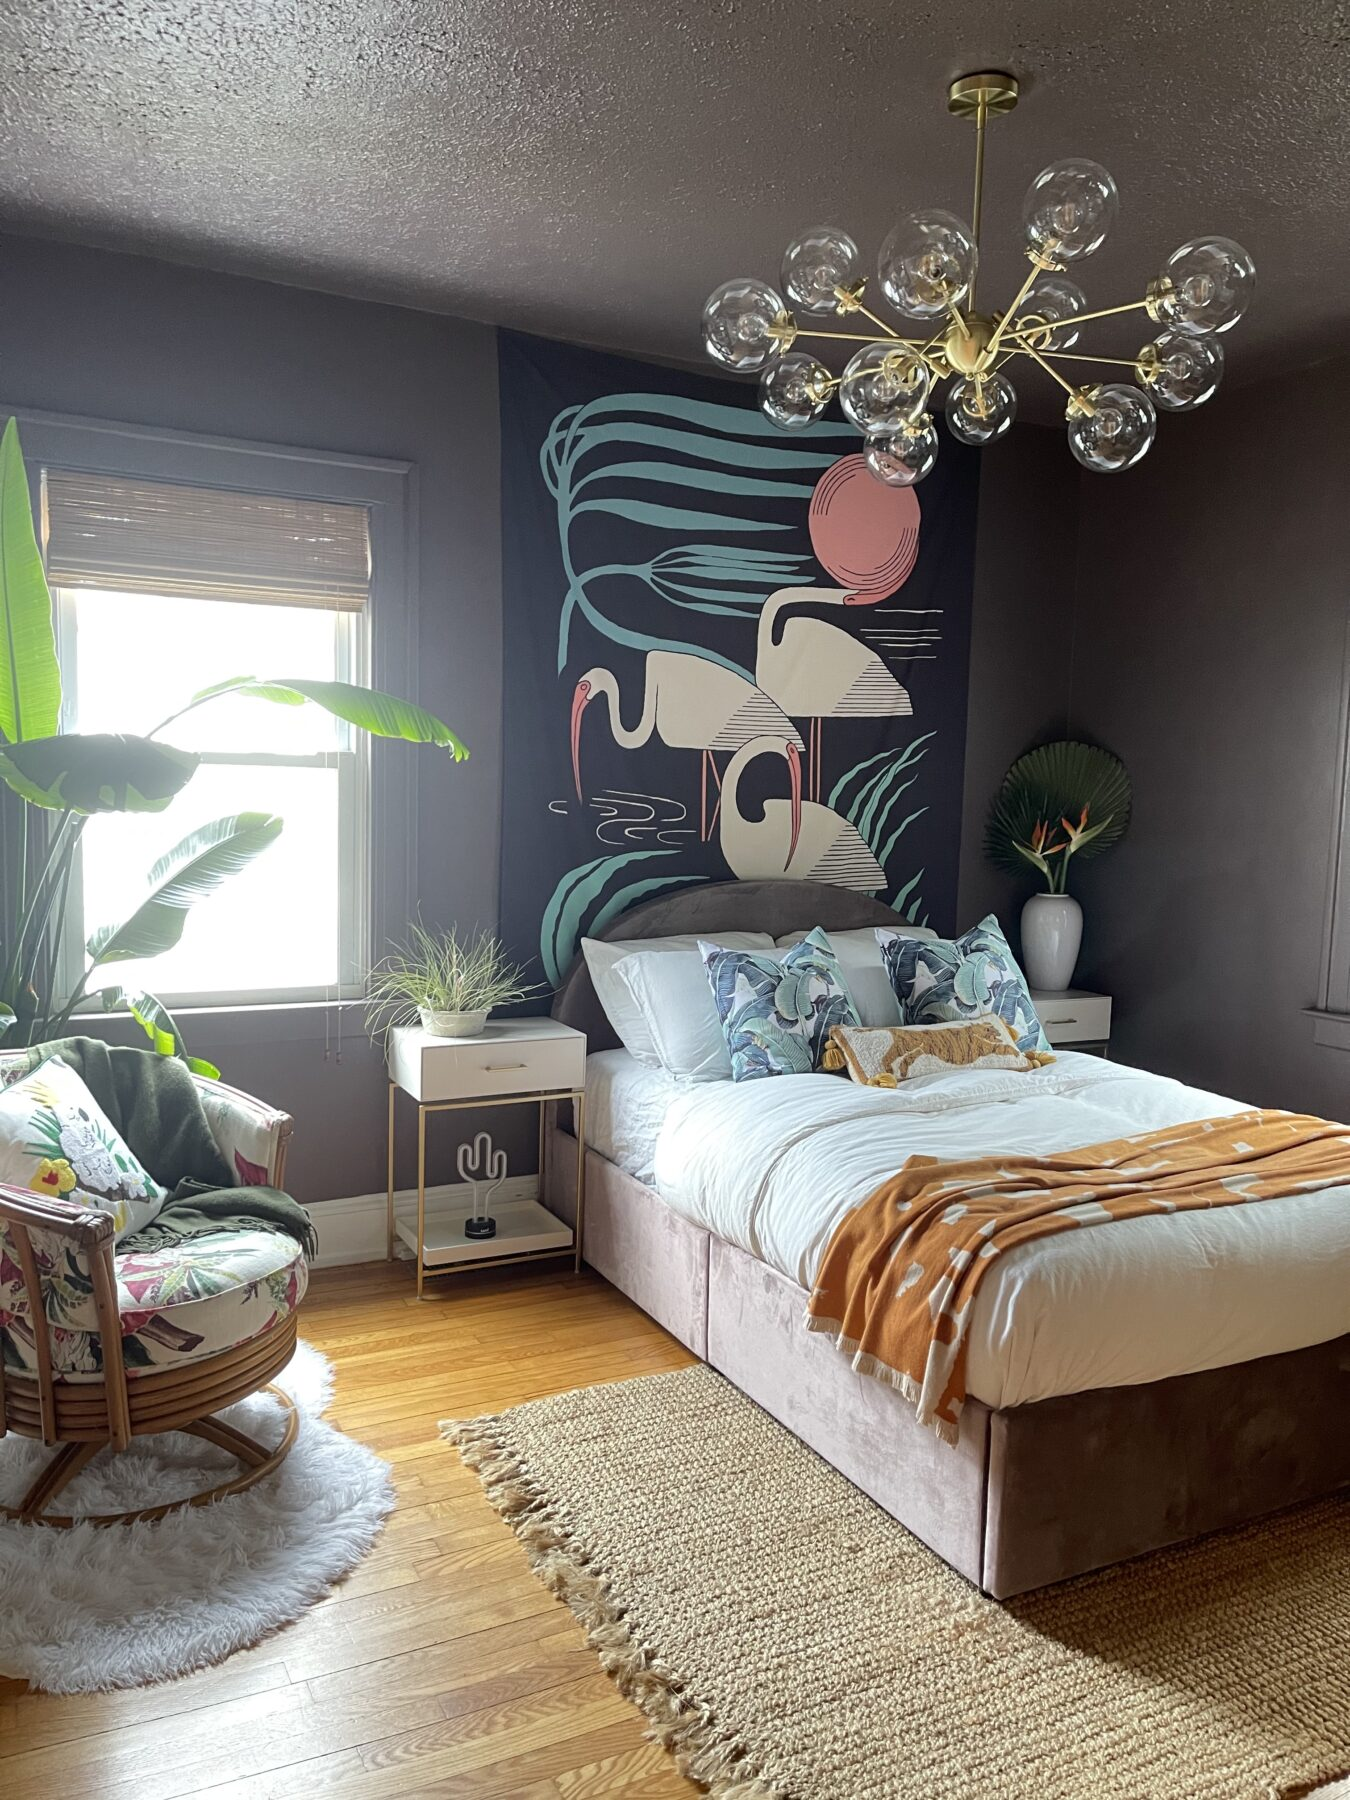 Guest Room Hospitality 101: 13 Must Haves for Every Guest Room | Guest Room Decor Ideas | JessicaBrigham.com